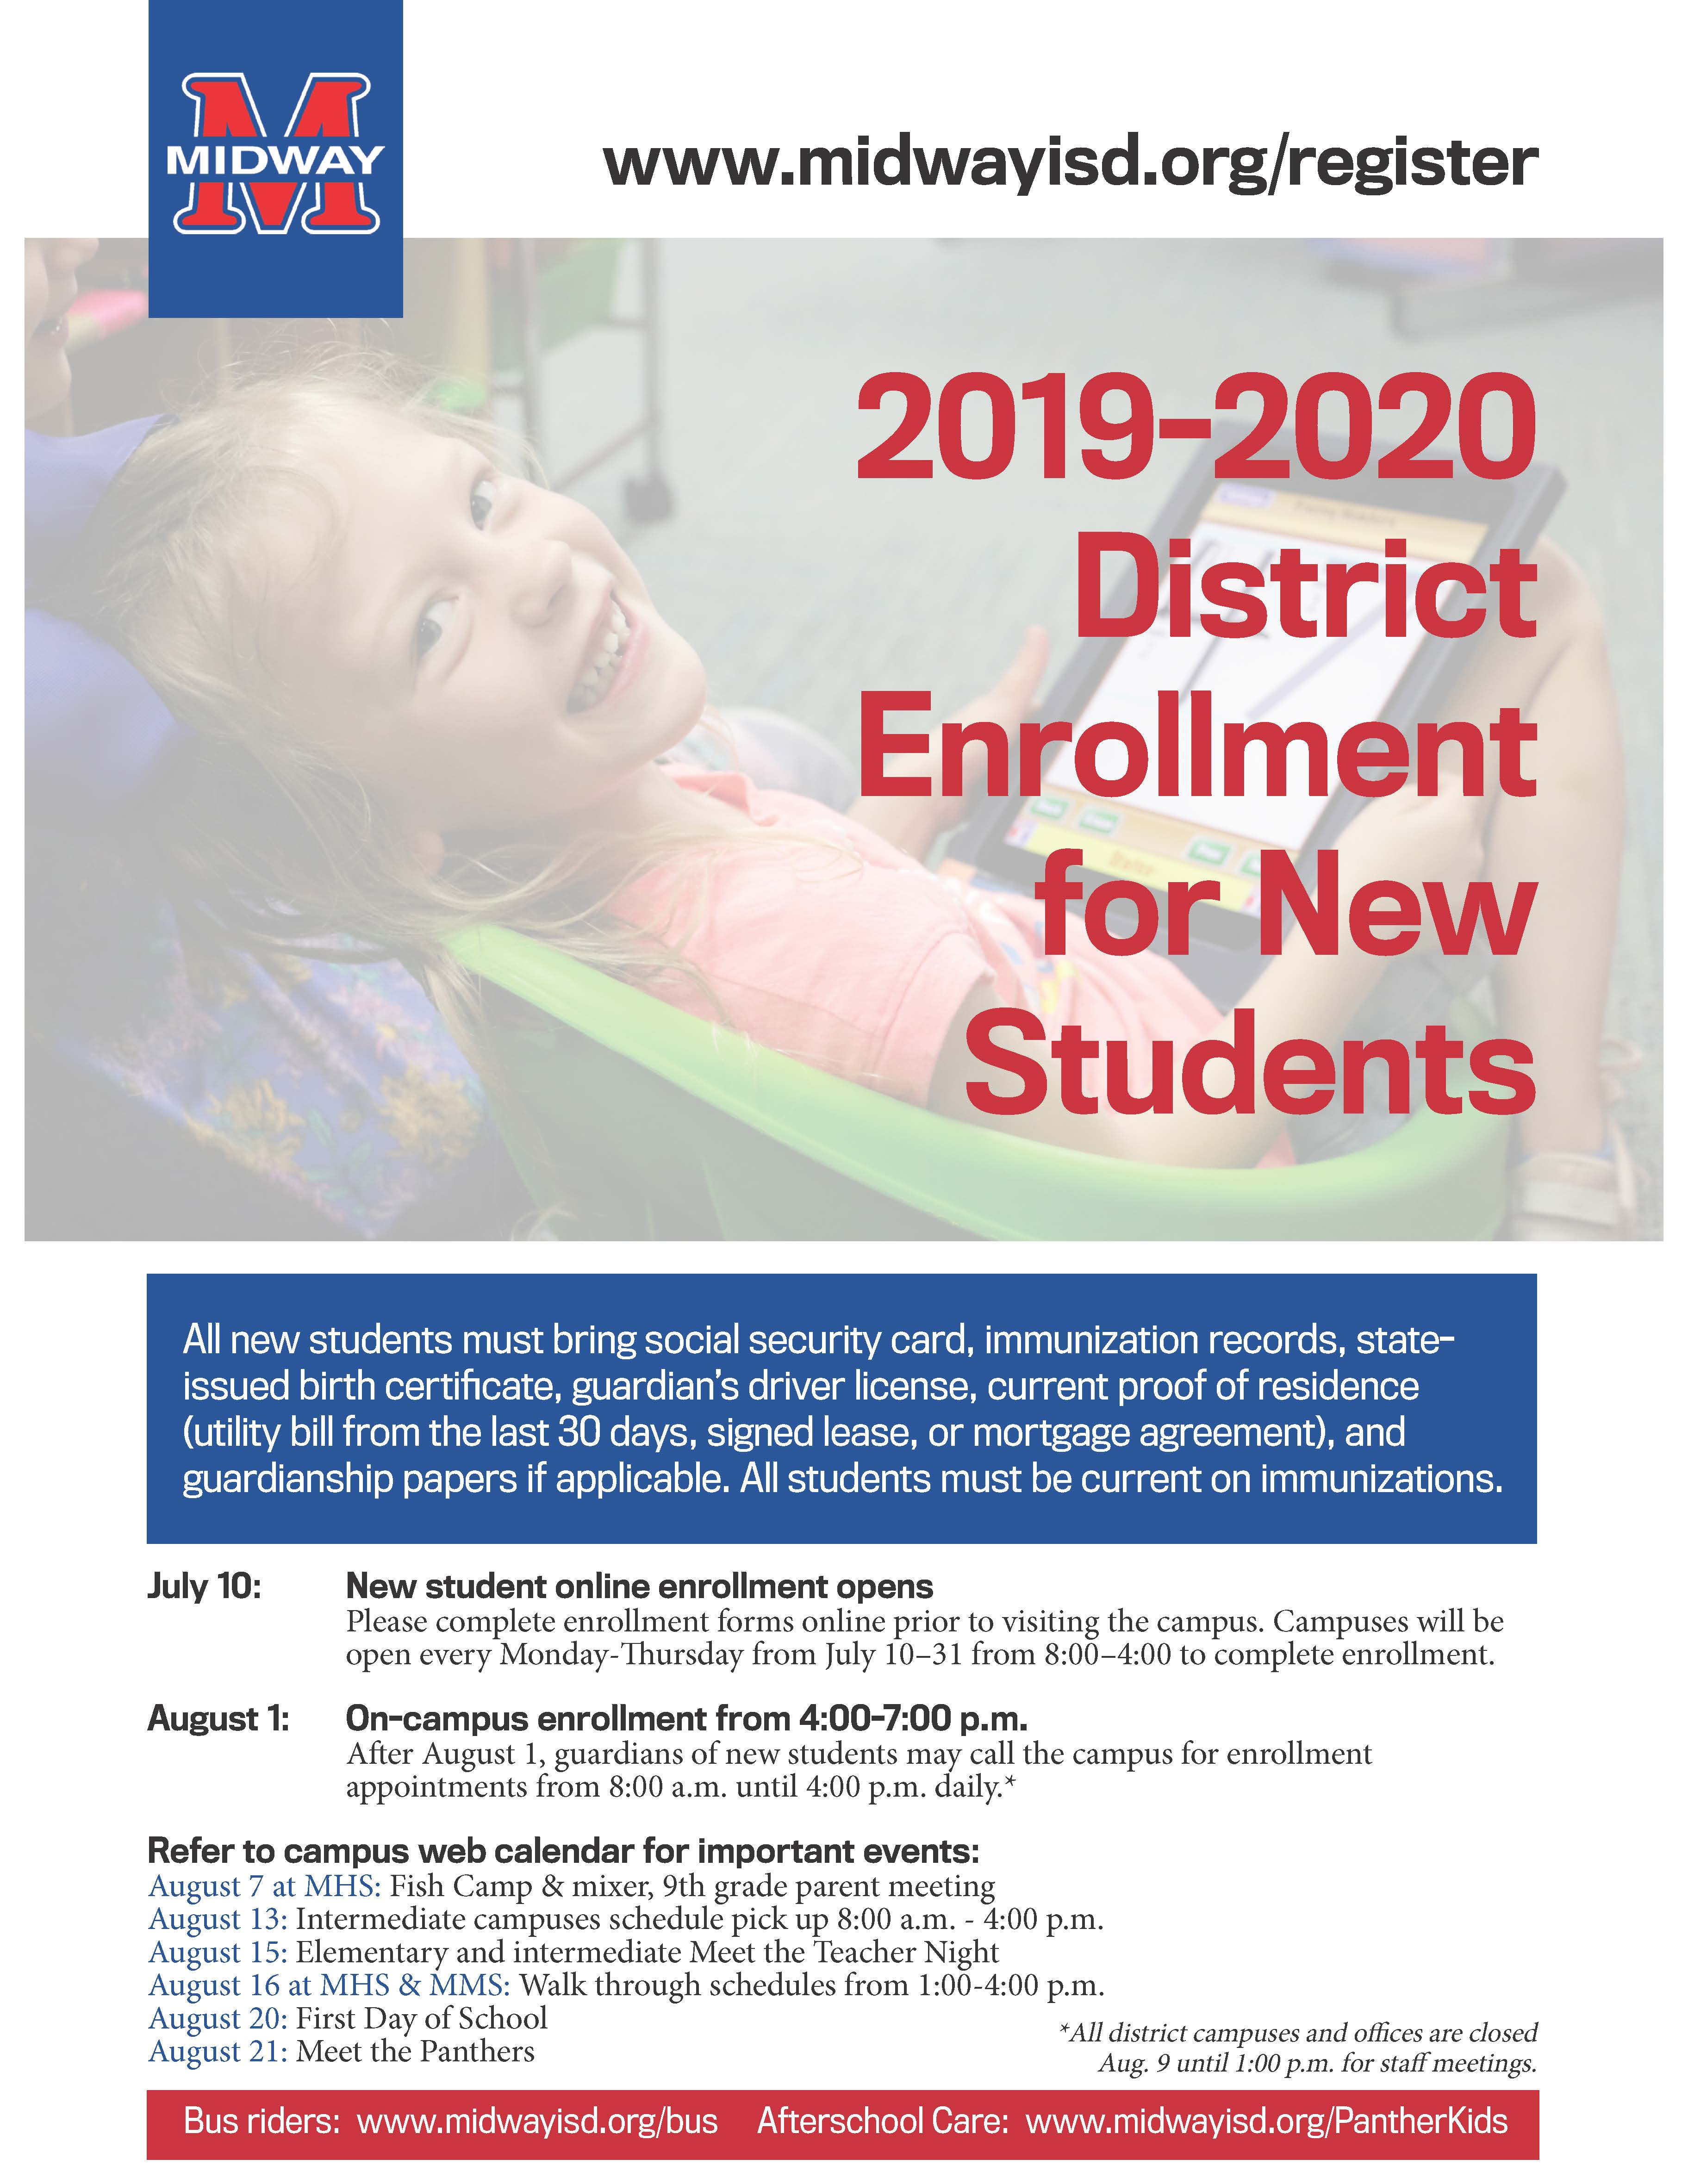 Midway ISD - MISD Online Registration Opens